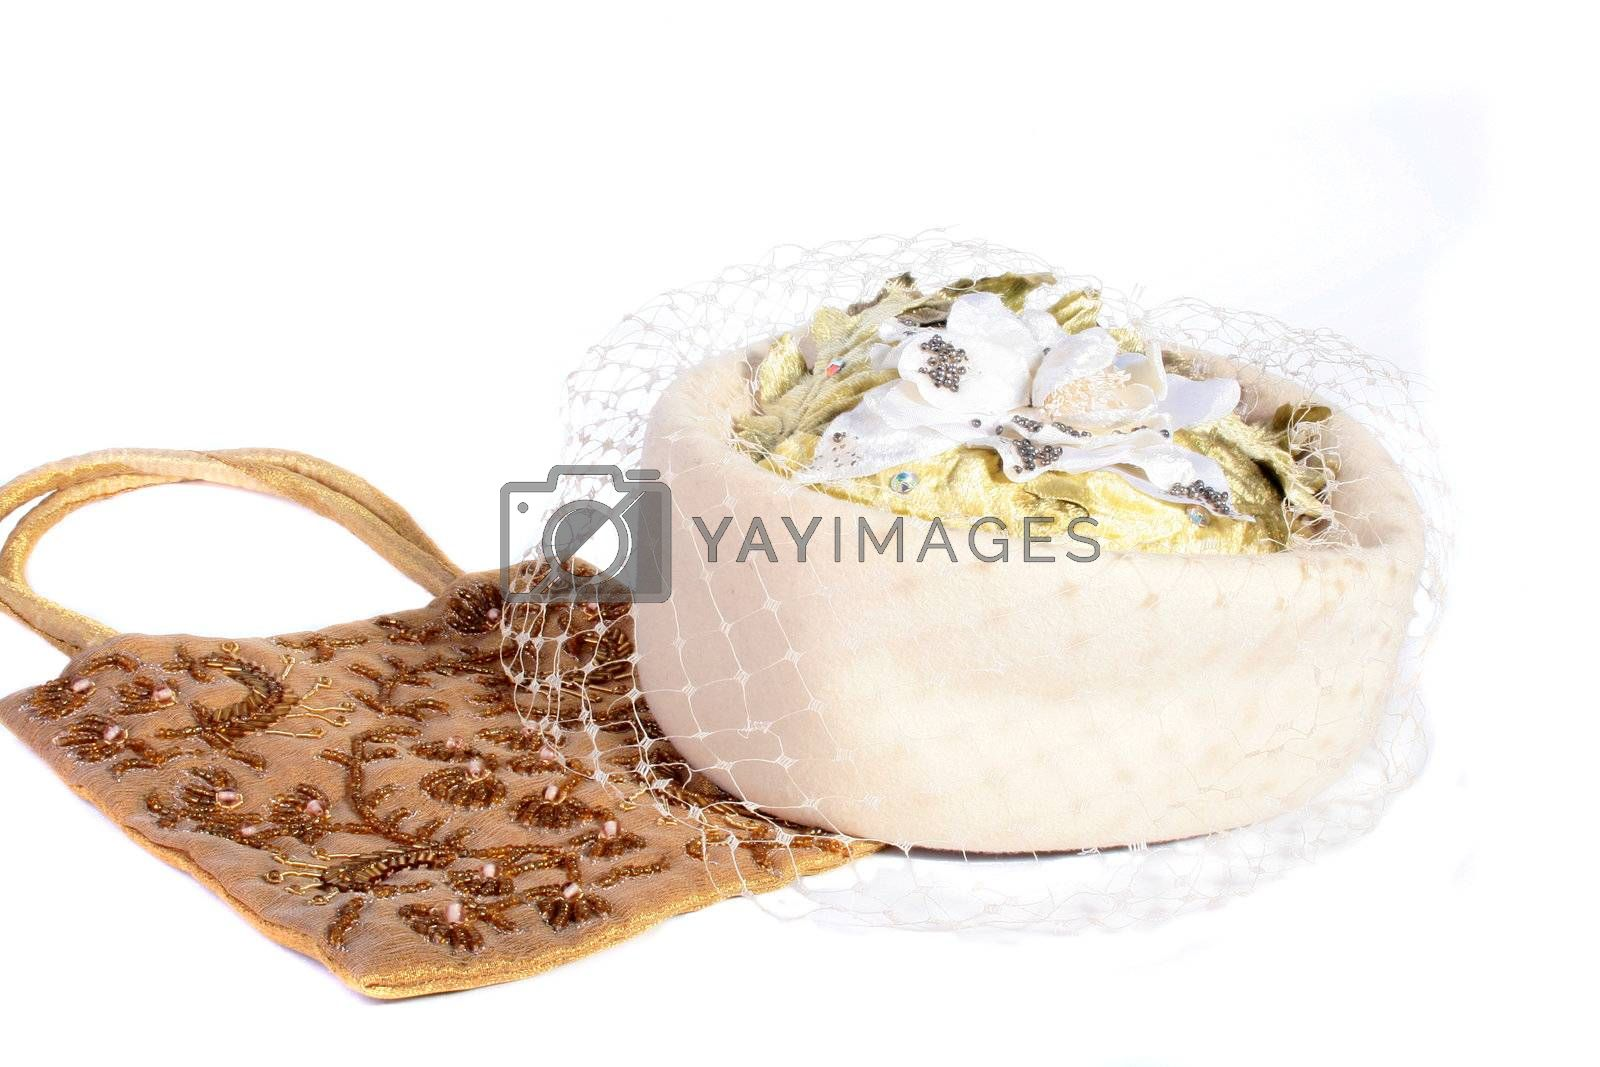 Hat with a veil and a handbag embroidered with beads.